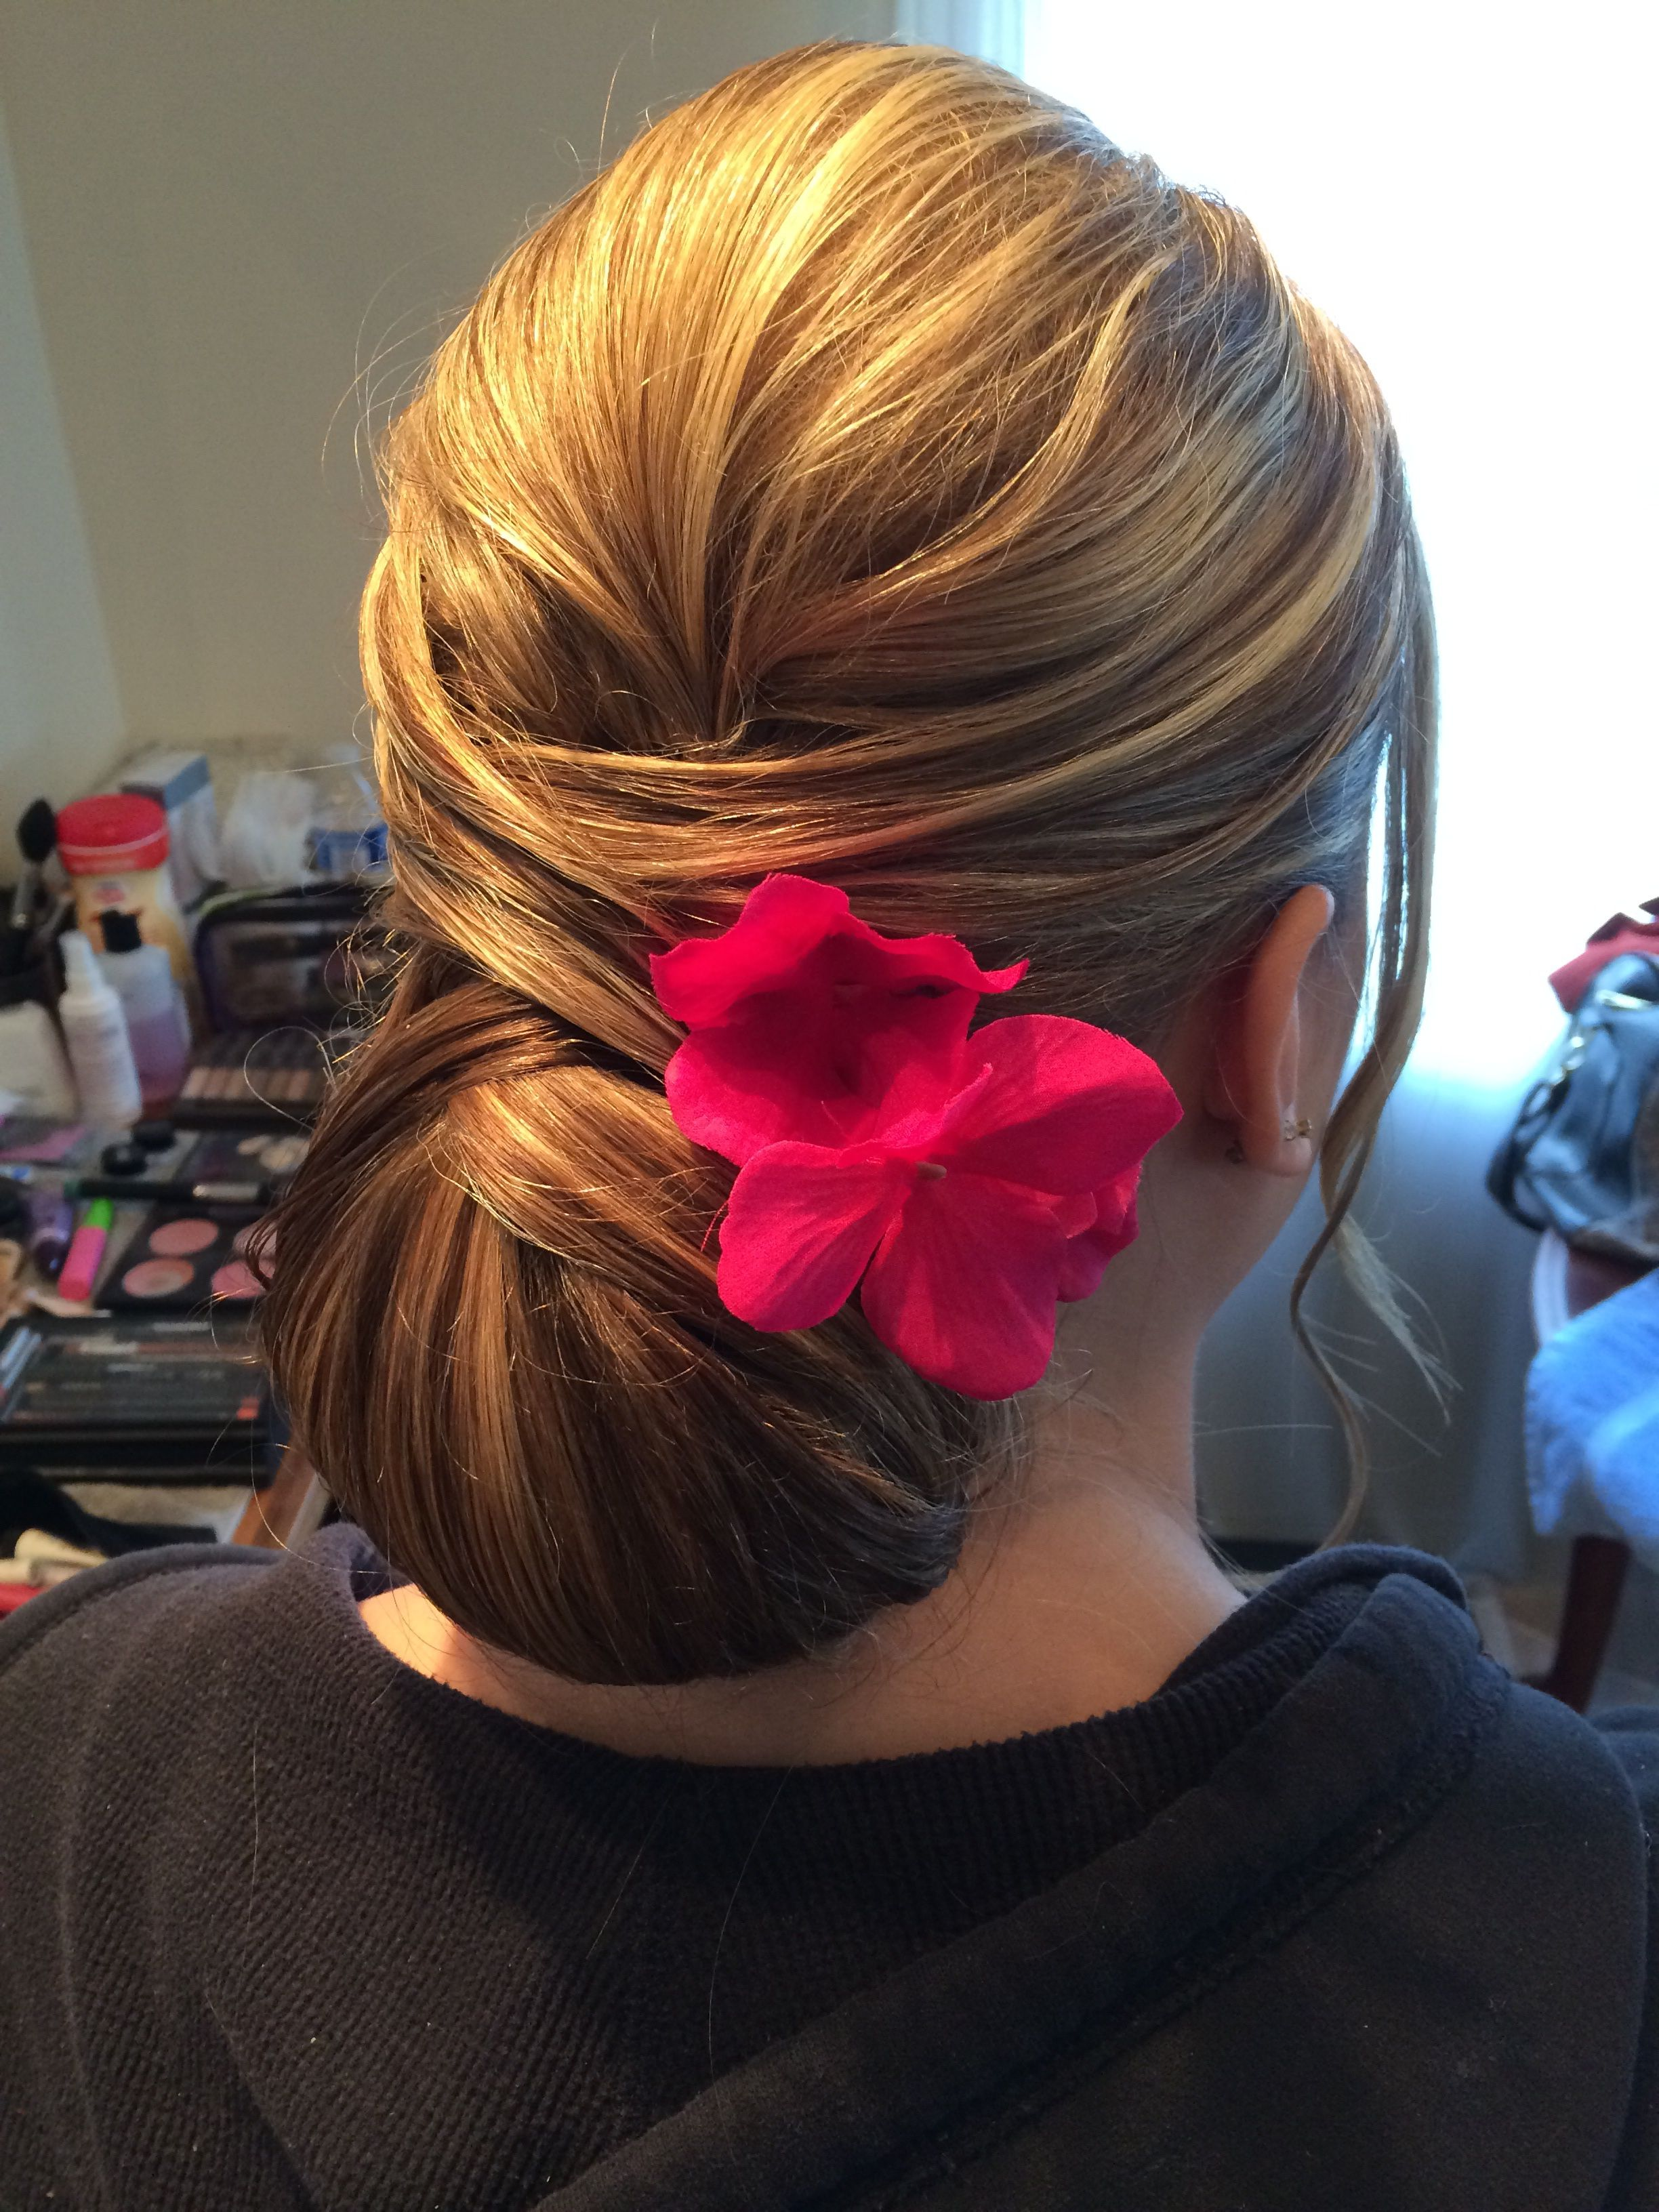 Sleek updo by Kimberly Valosen